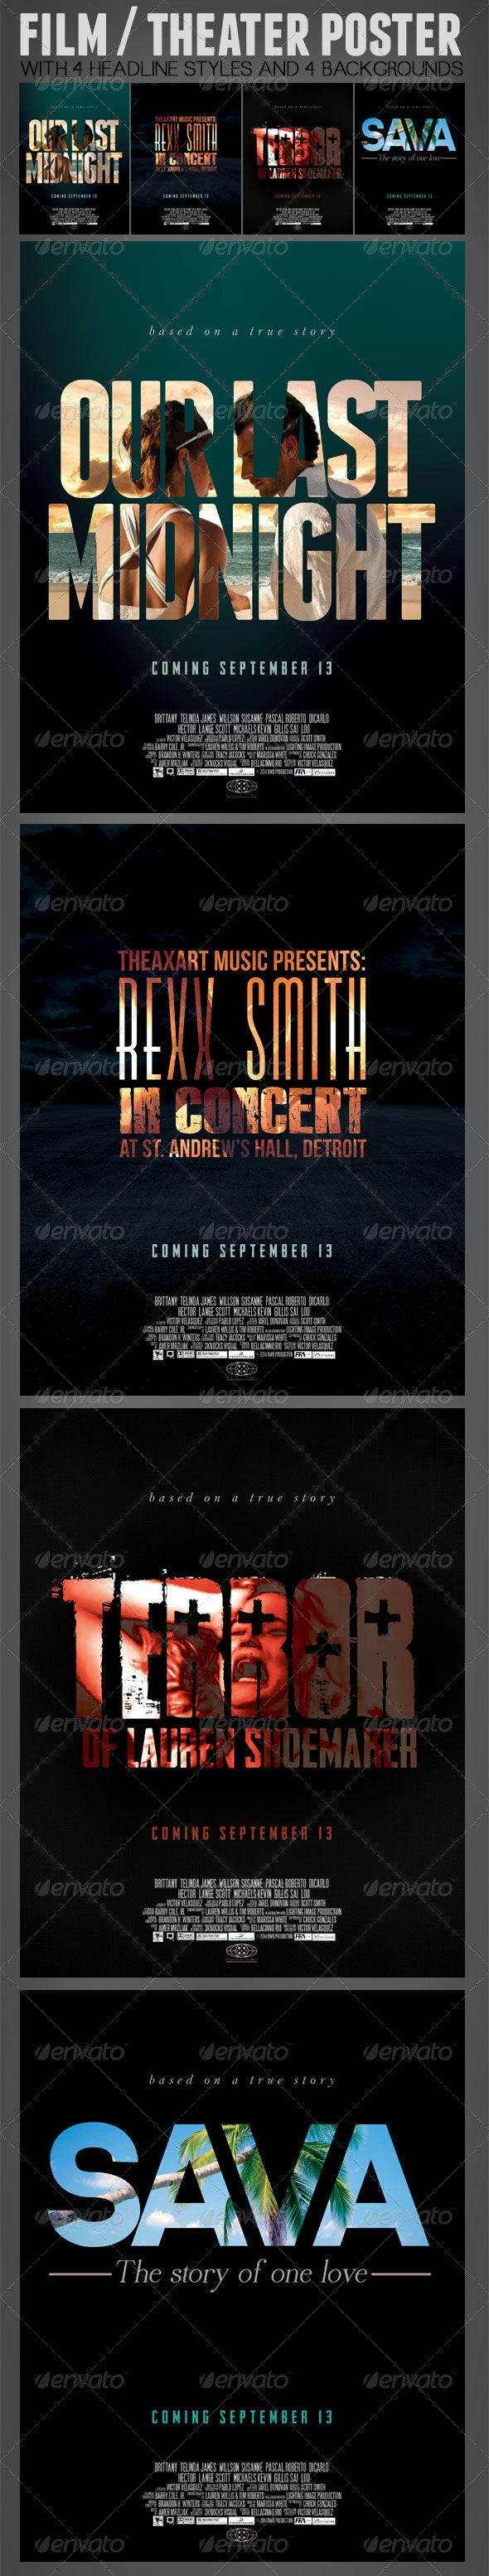 Film or Theater Poster  - Print Templates